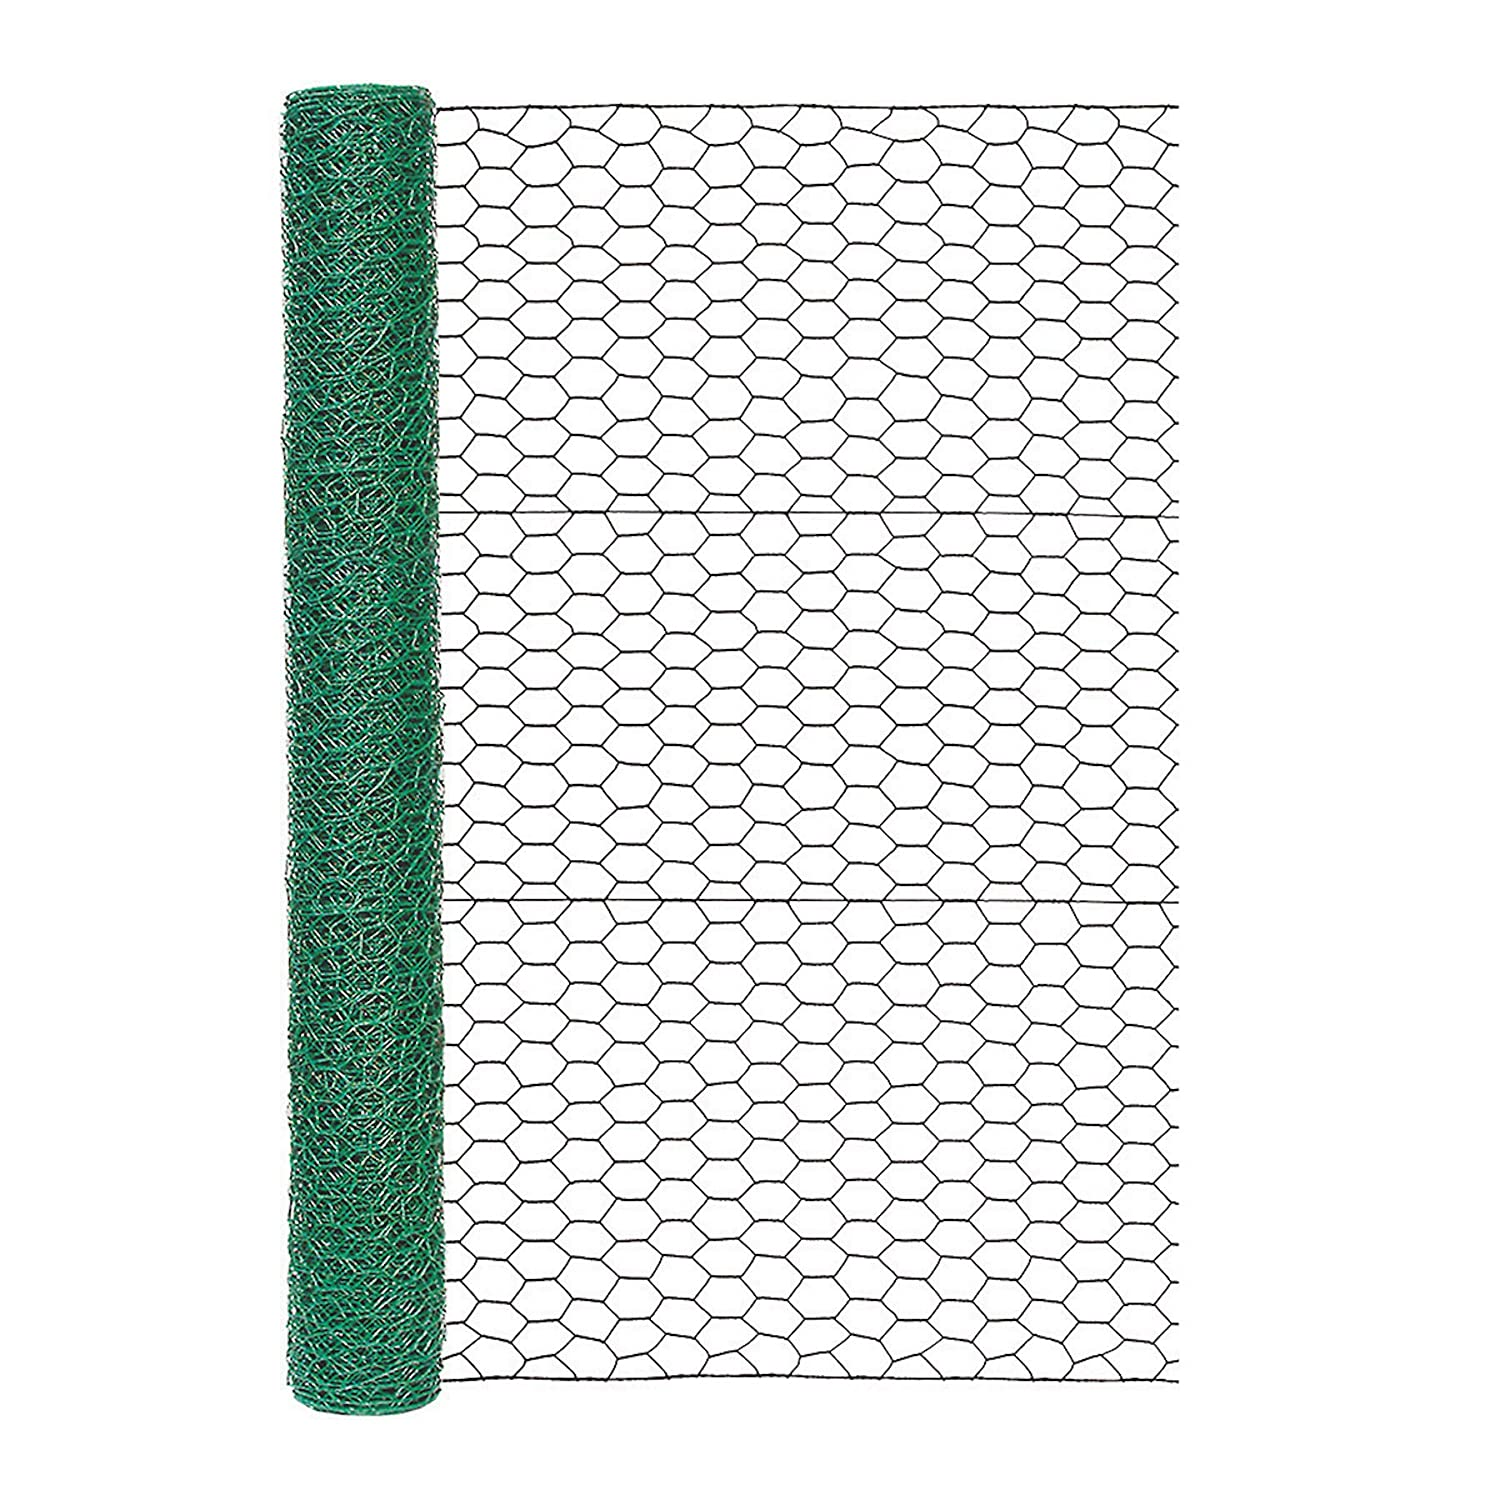 Origin Point Garden Zone 36 Inches x 25 Feet 20-Gauge Poultry Netting with 1-Inch Openings